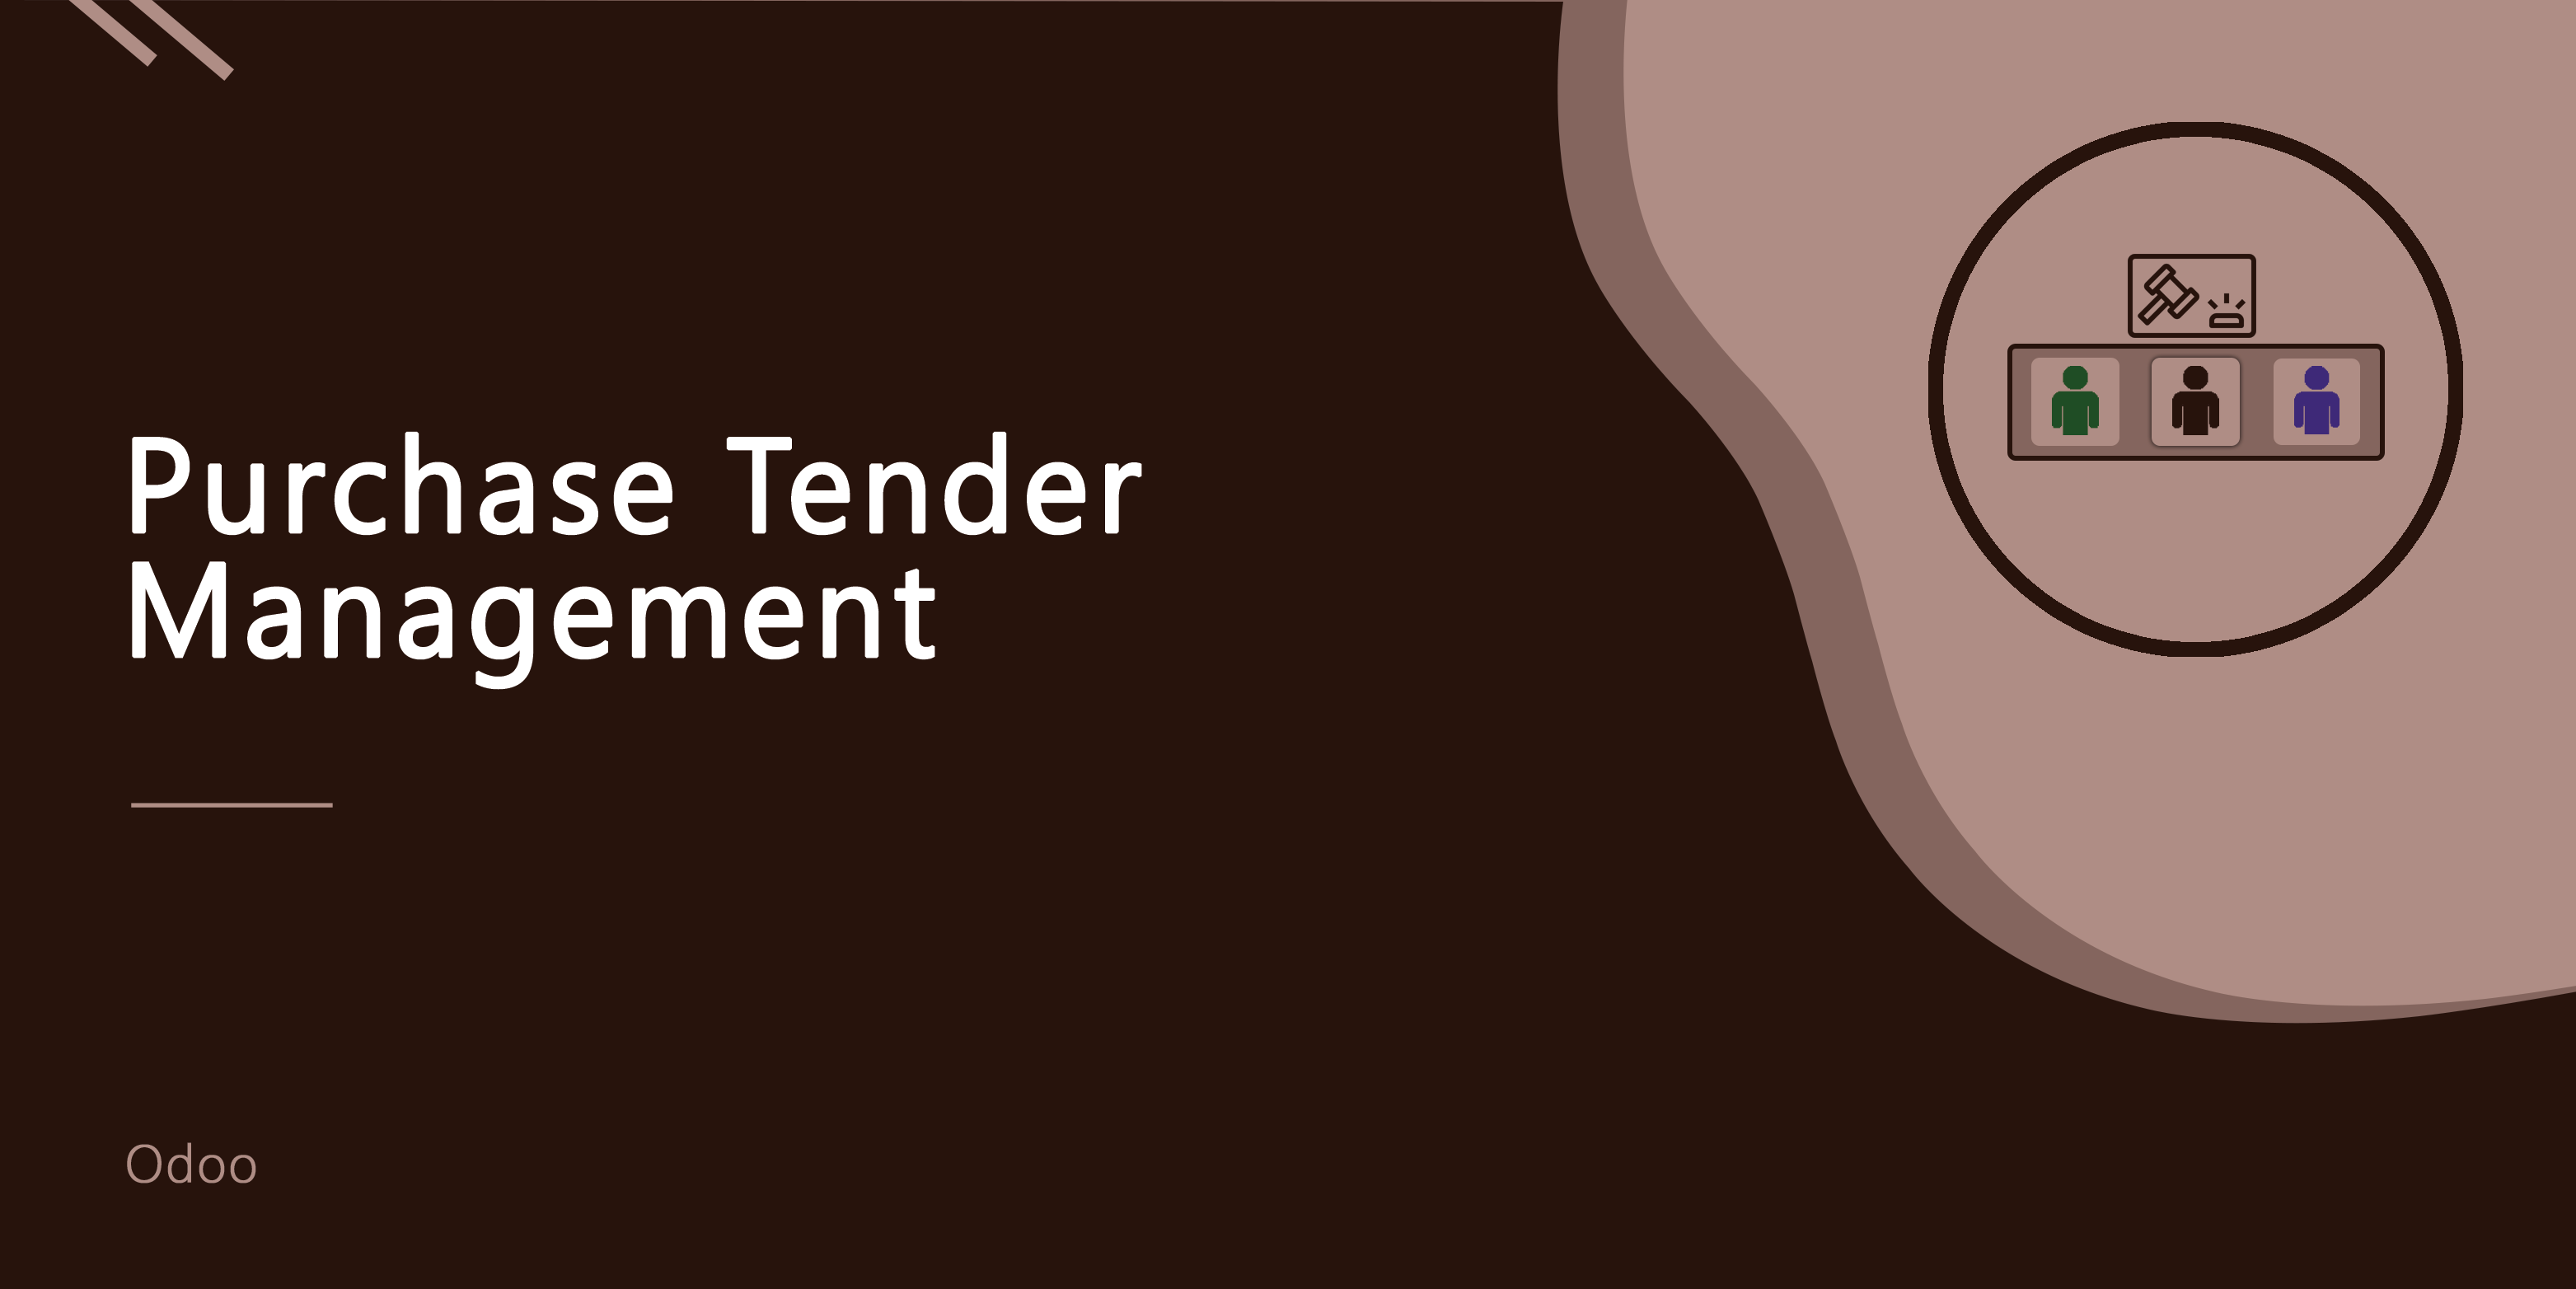 Purchase Tender Management